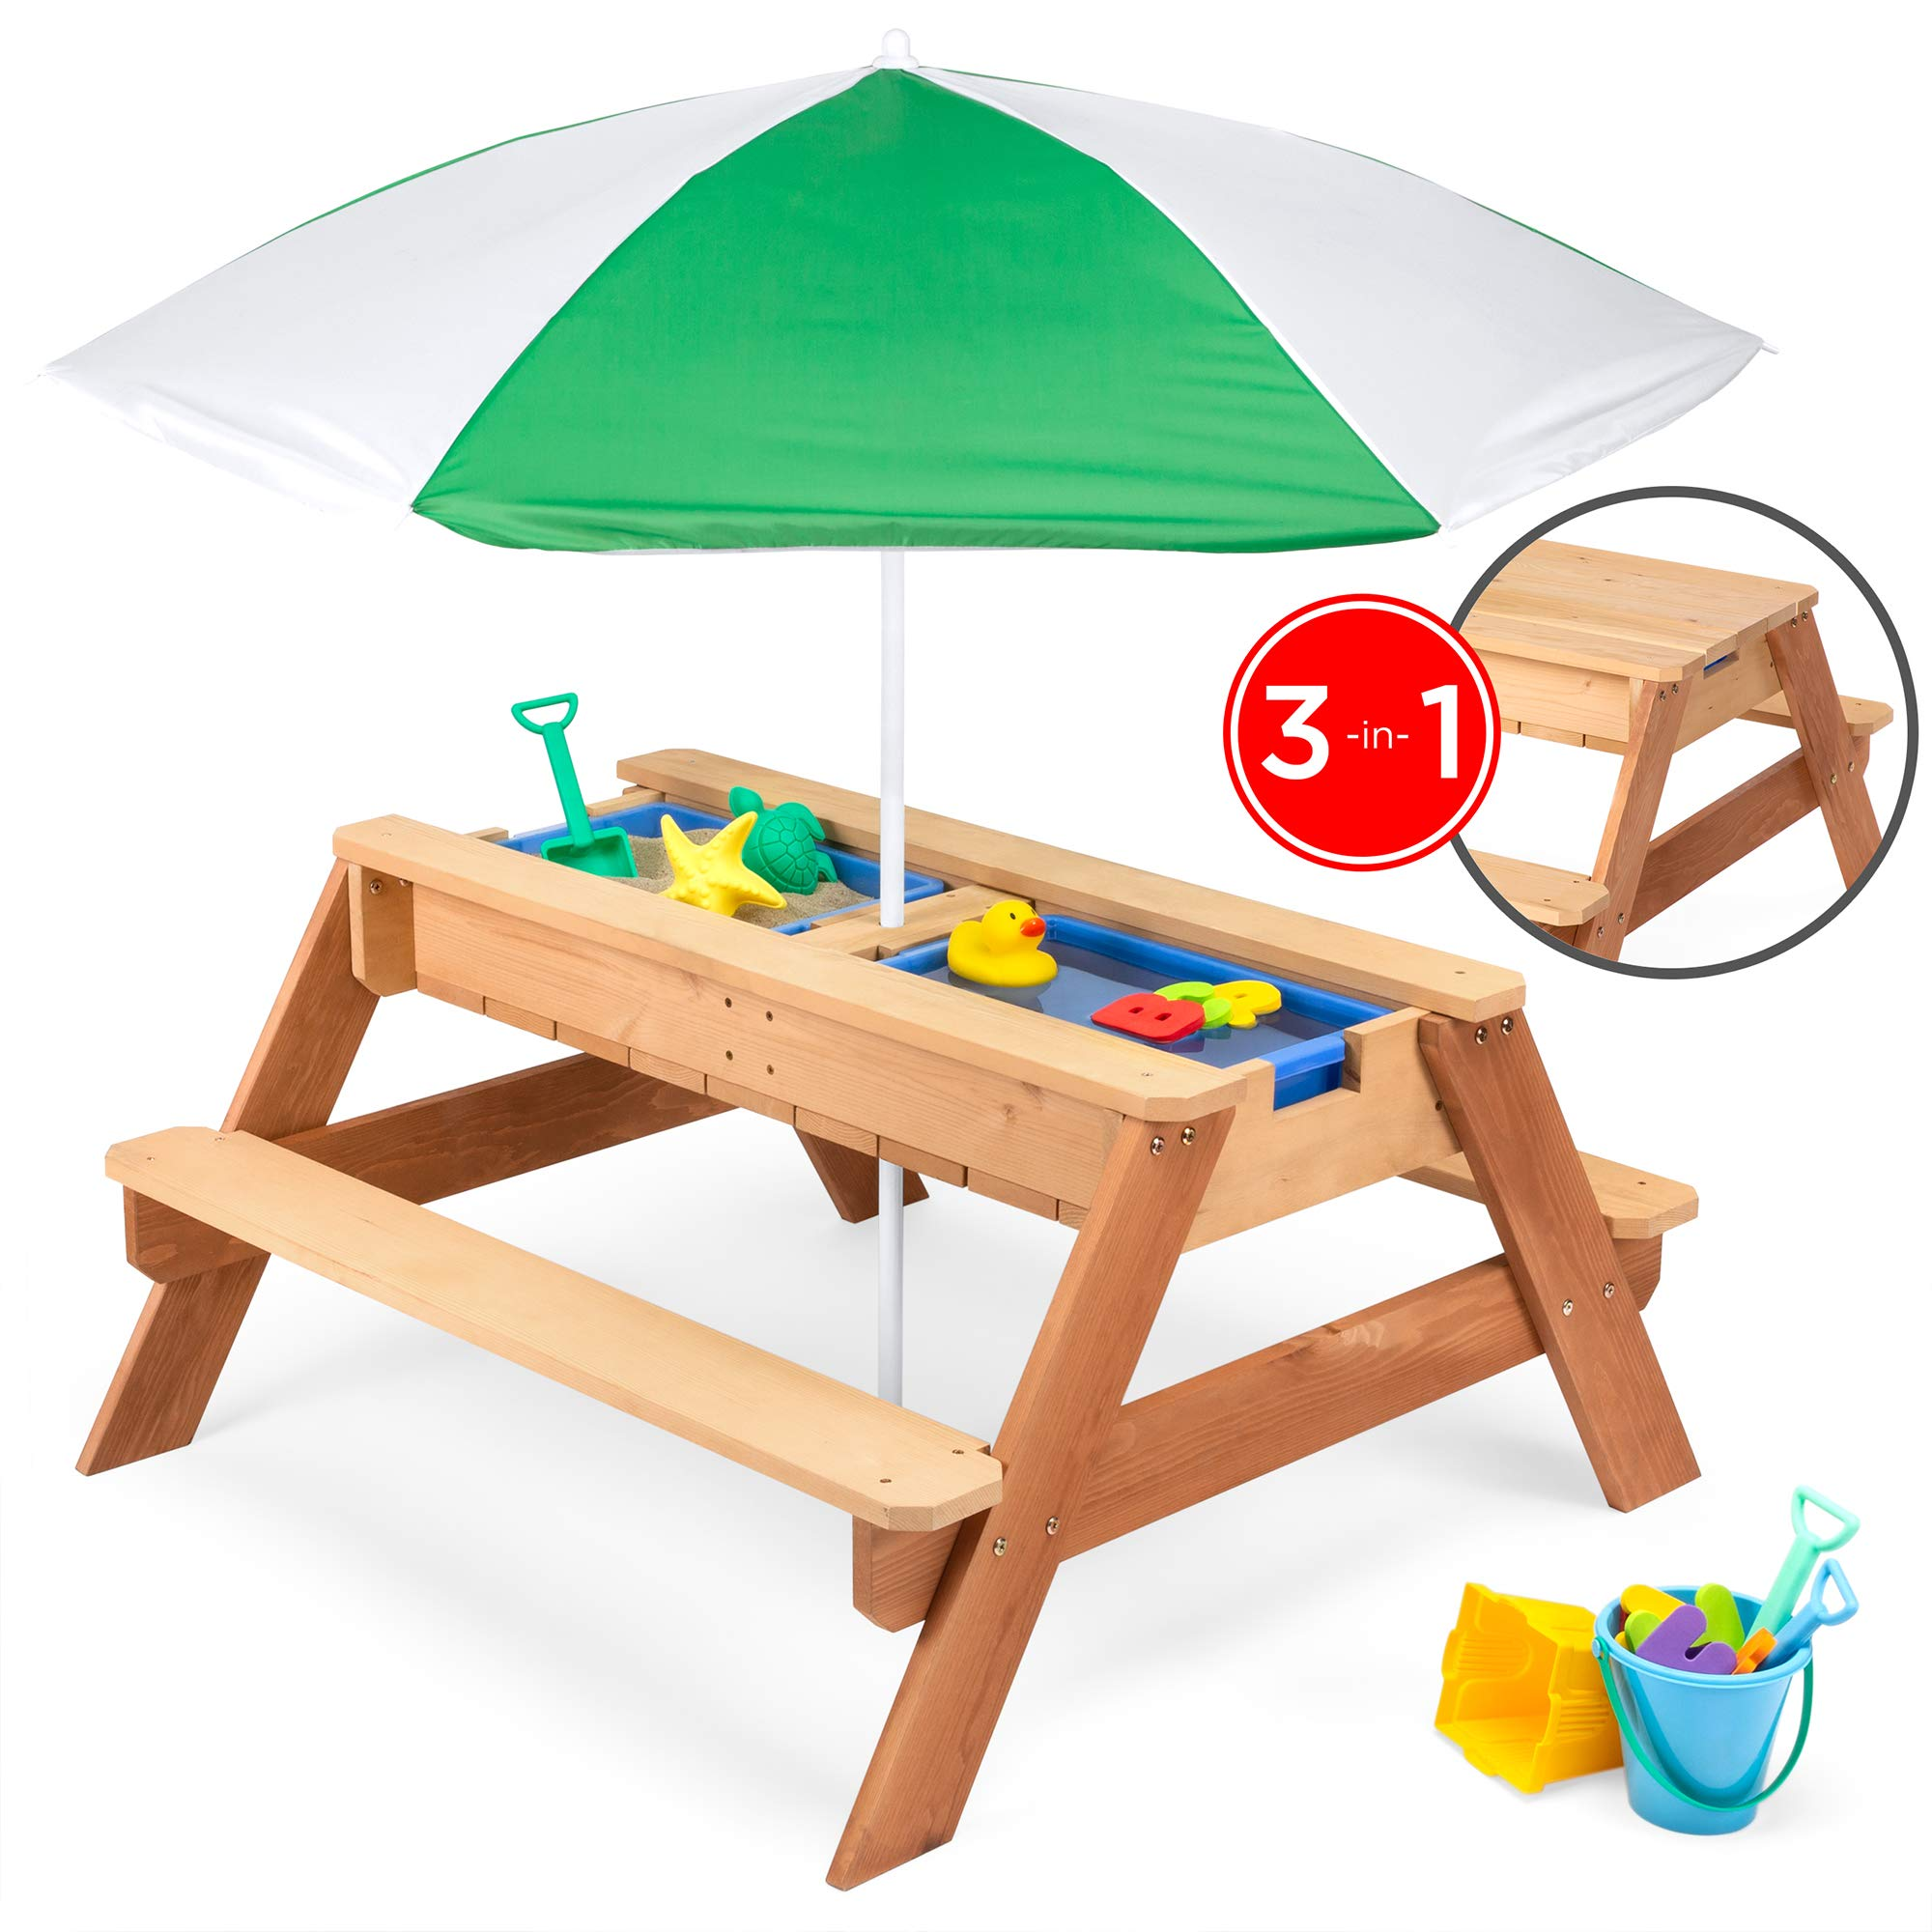 Best Choice Products Kids 3-in-1 Outdoor Convertible Wood Activity Sand & Water Picnic Table w/ Umbrella, 2 Play Boxes by Best Choice Products